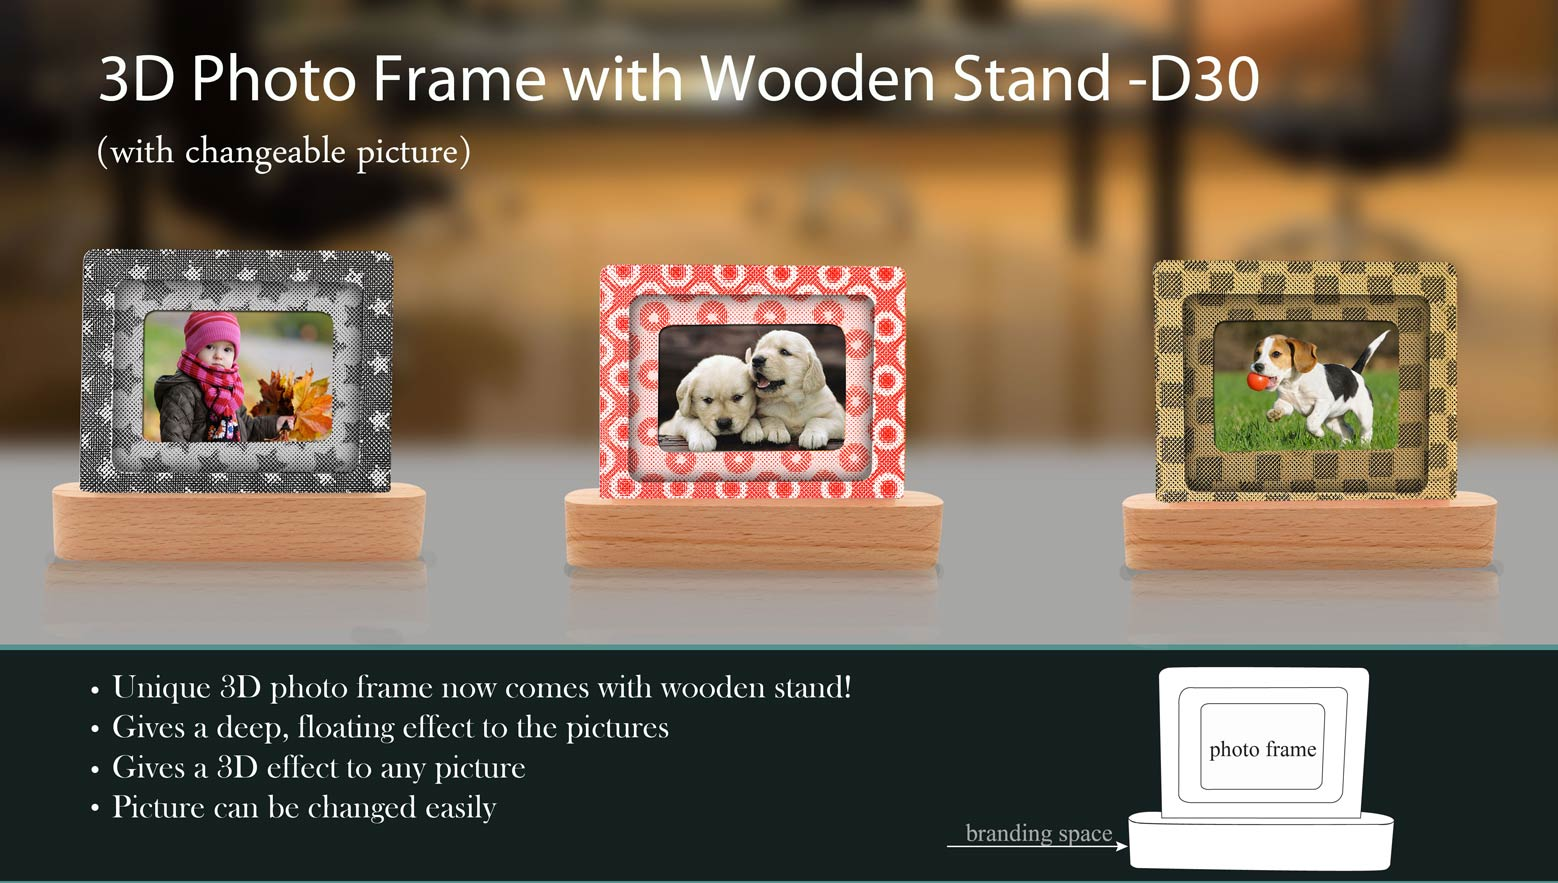 D30 - 3D photo frame with wooden stand (in gift box)